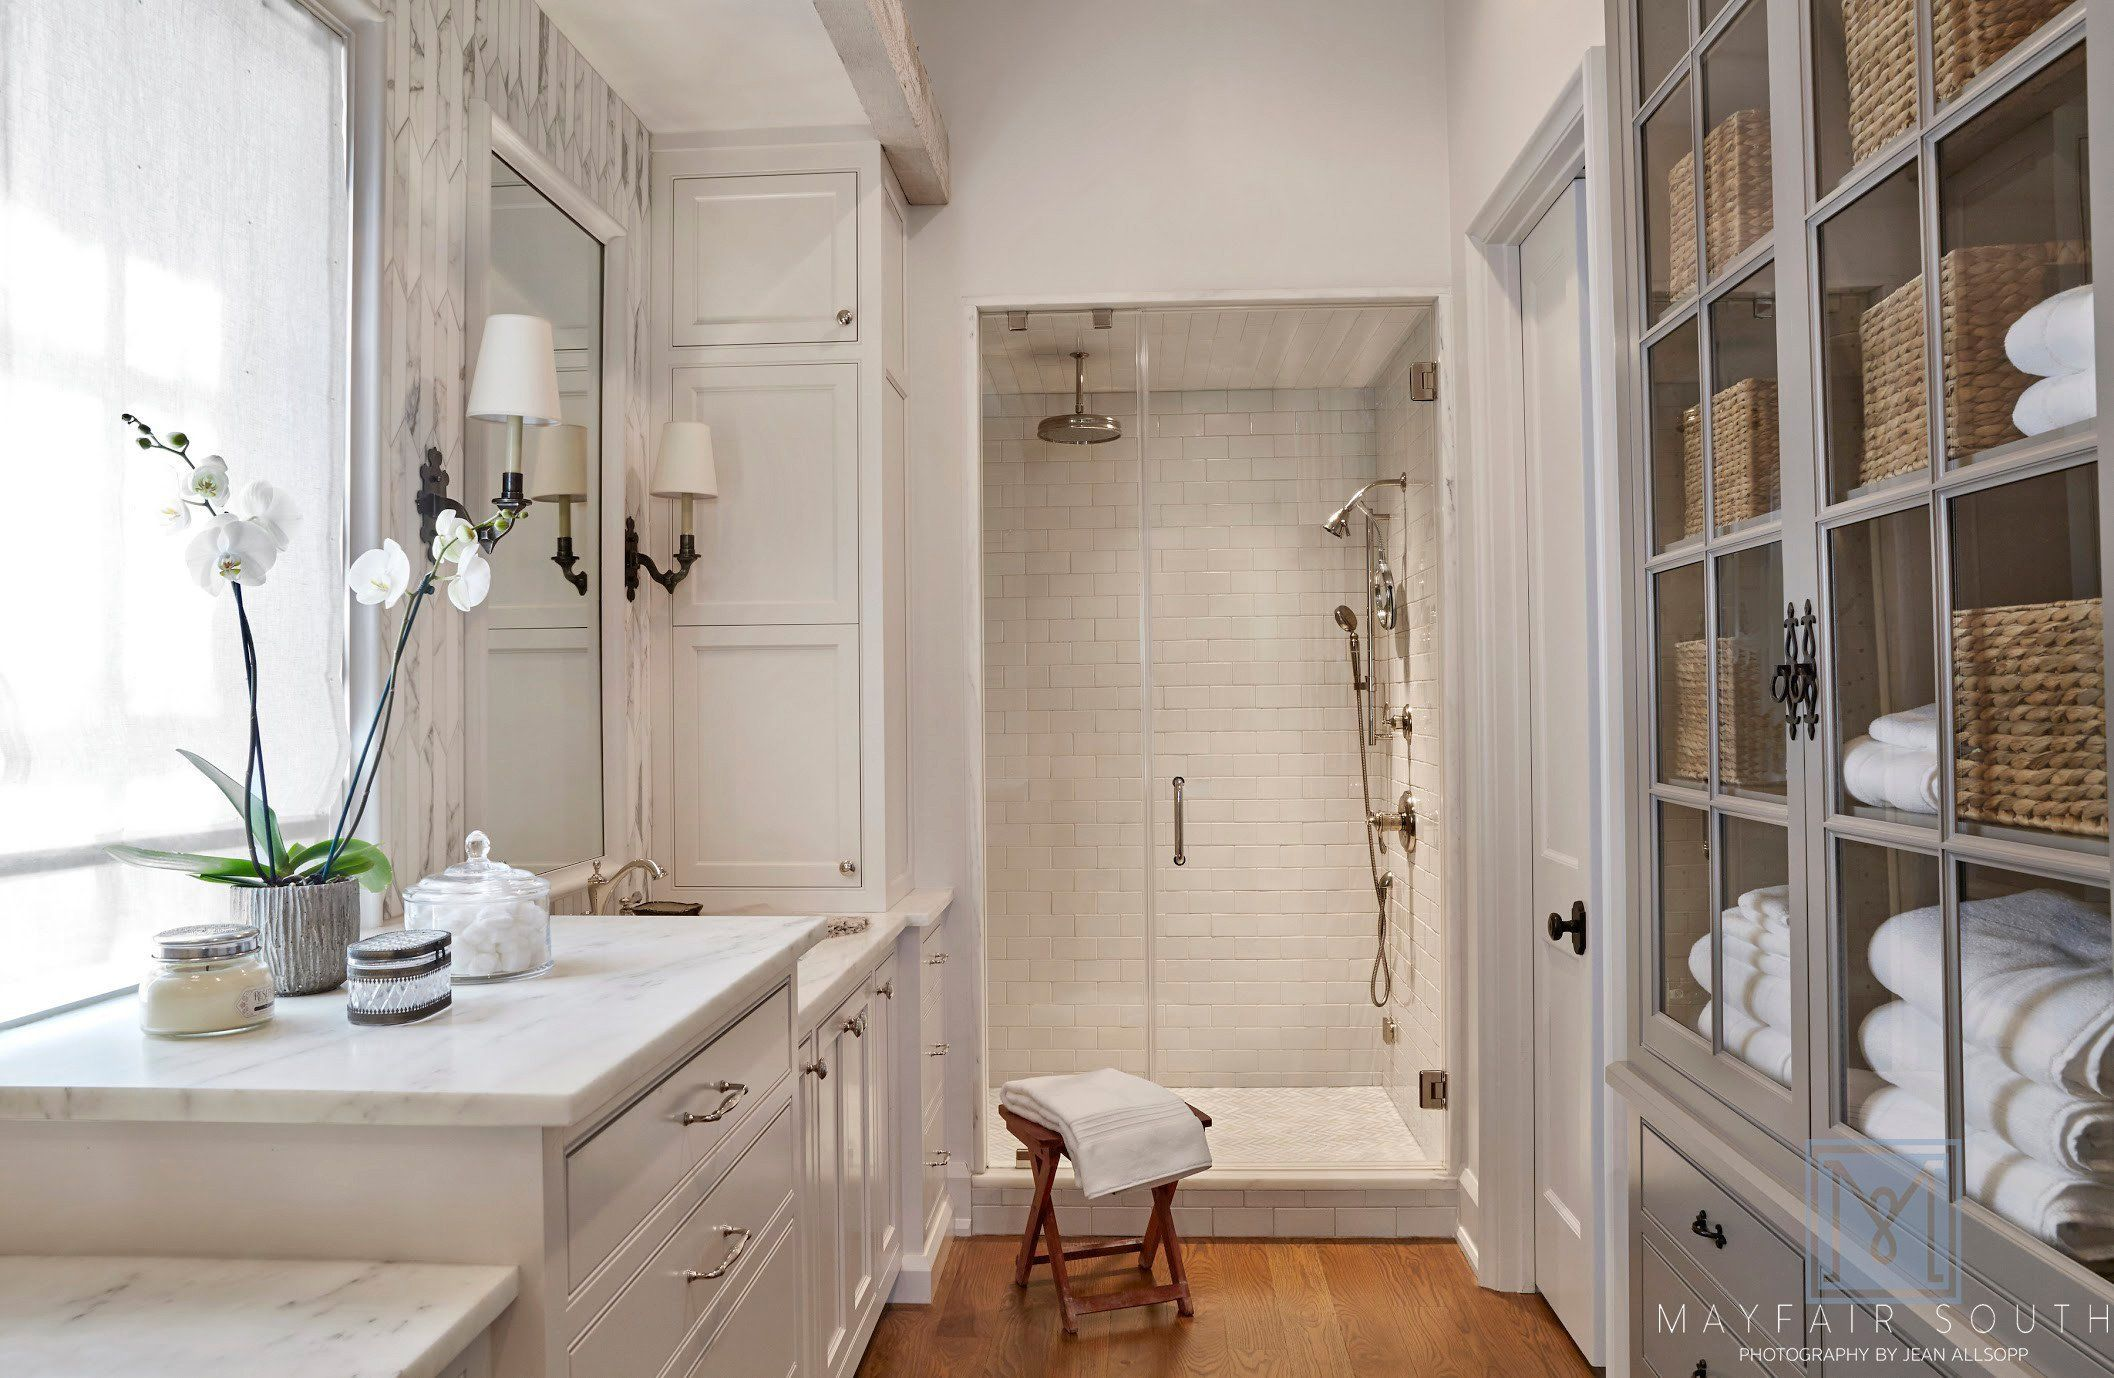 ideas to bathroom design birmingham long do homey it remodel justbeingmyself decoration take gallery remodeling al stunning how renovation amusing a does keyid